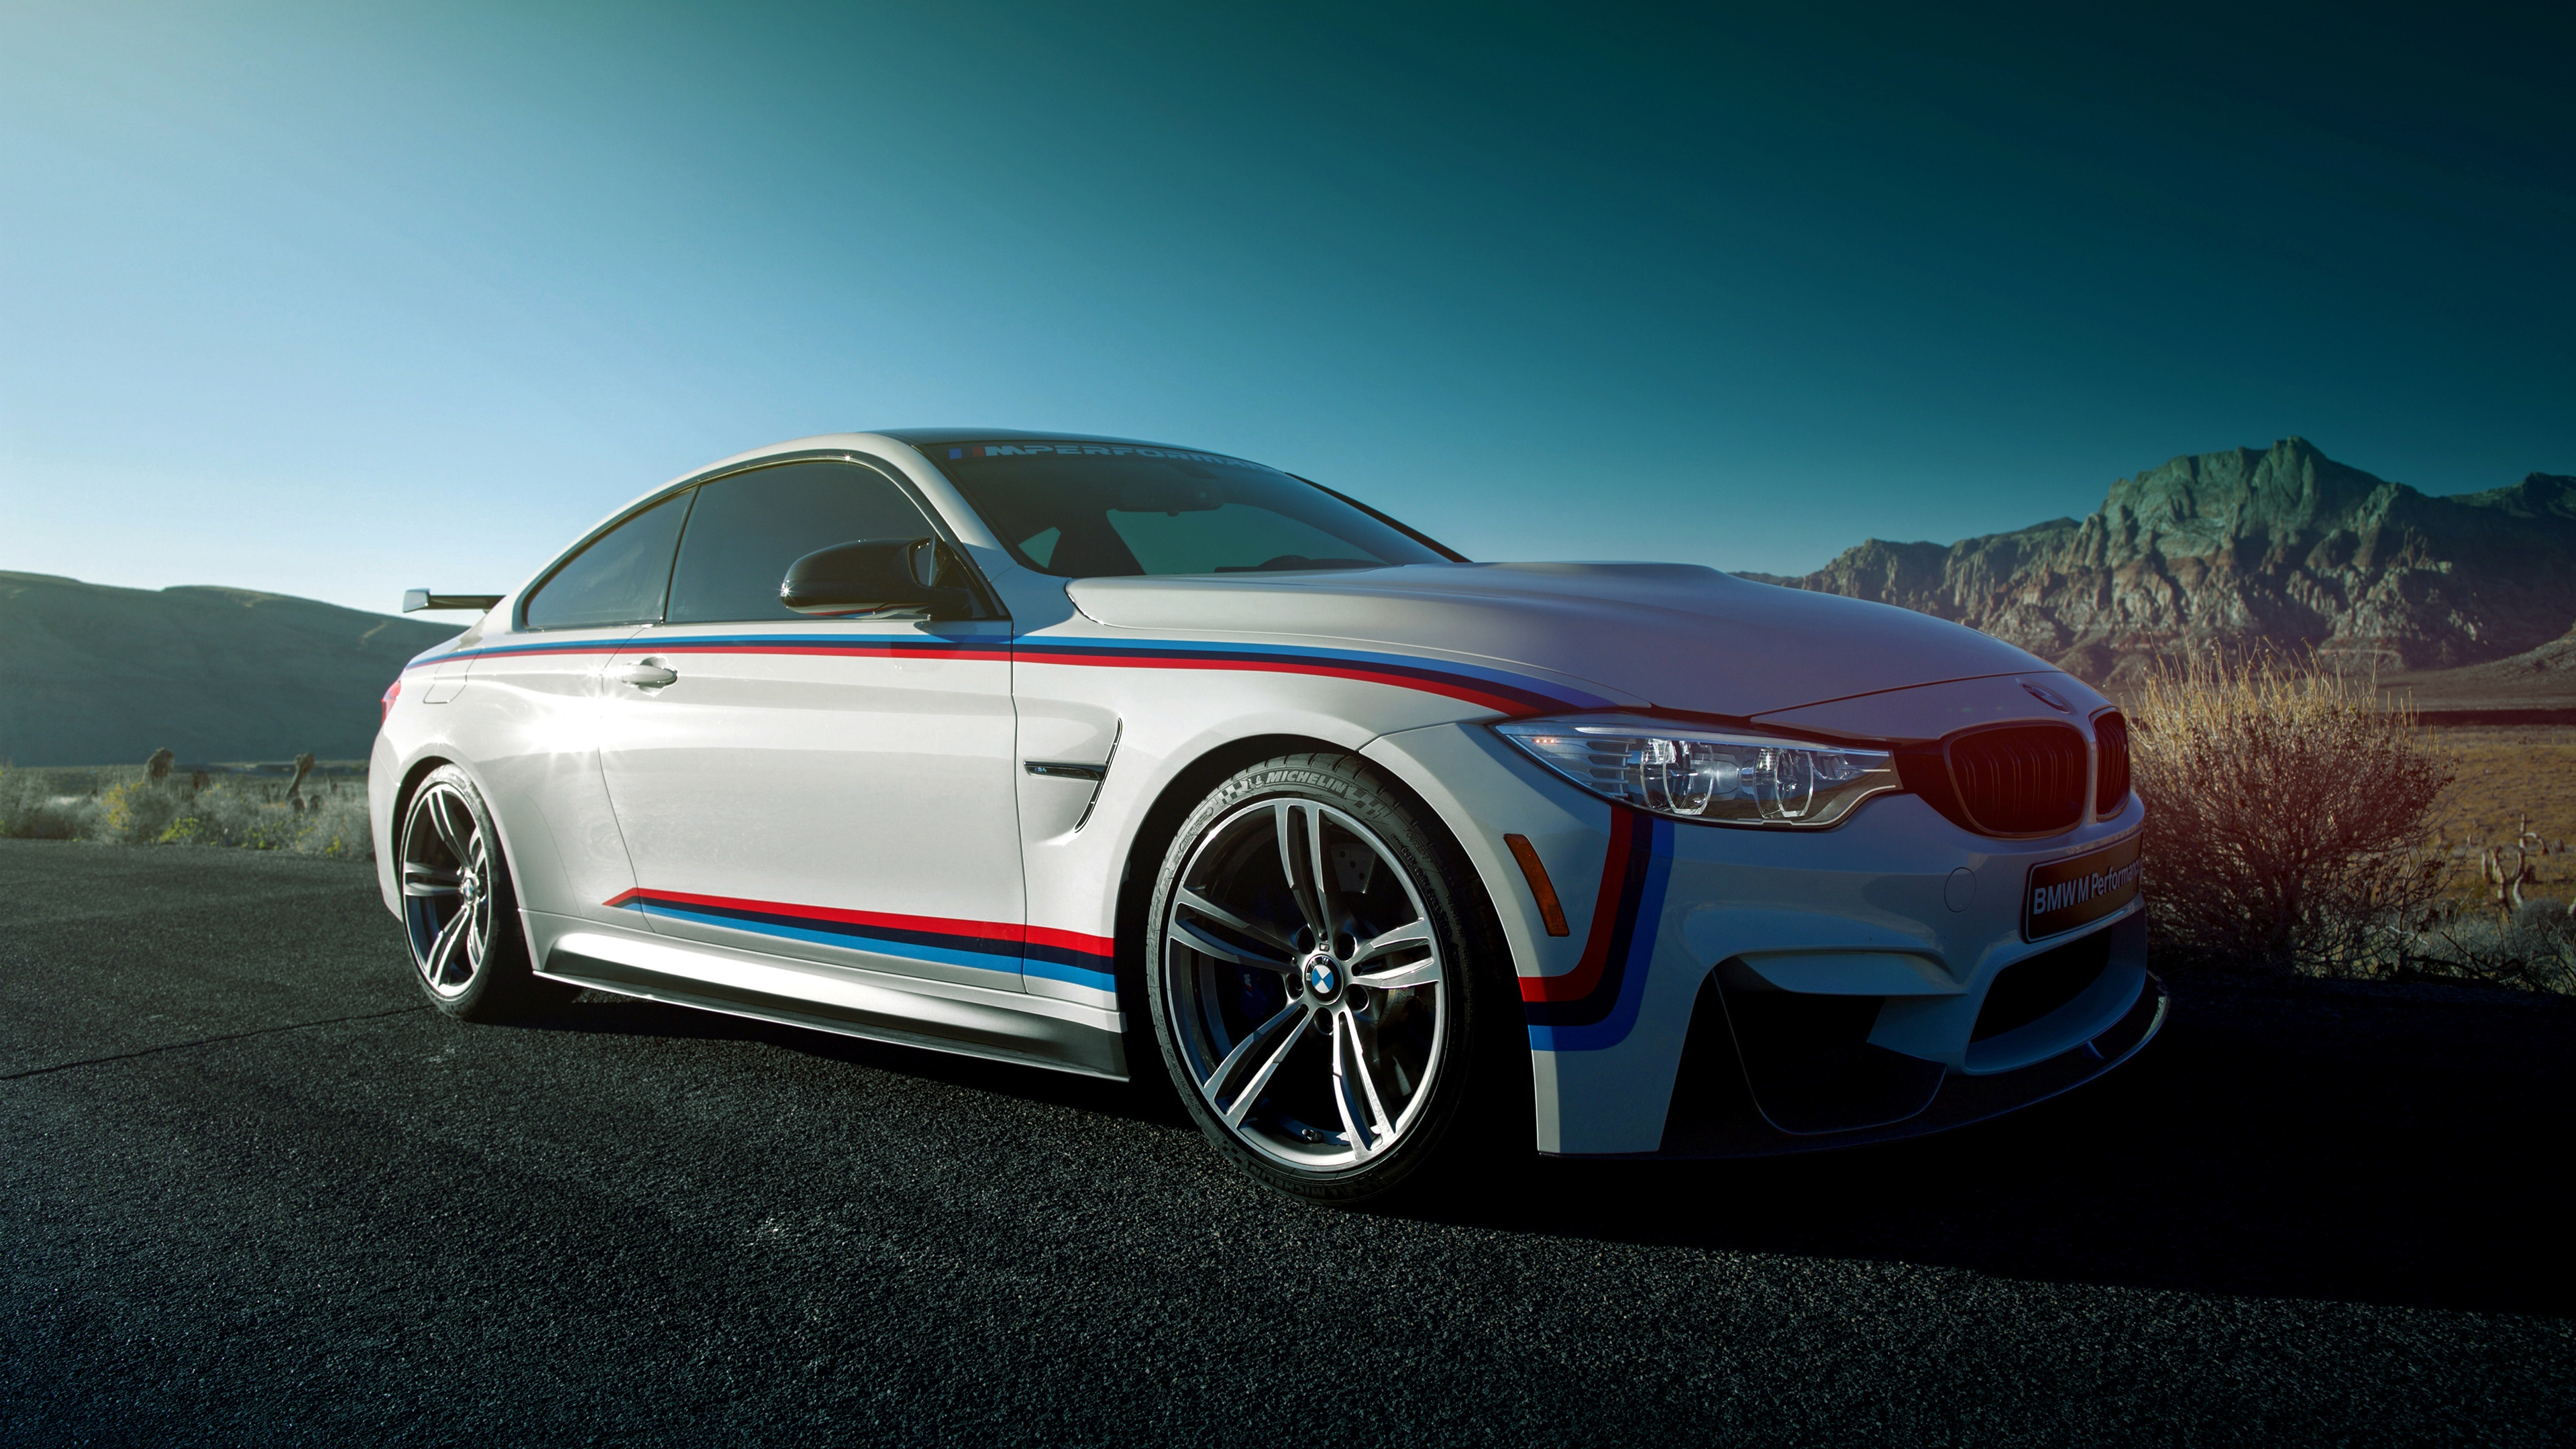 Awesome Quotes Wallpapers Free Download Bmw M4 Backgrounds Free Download Pixelstalk Net